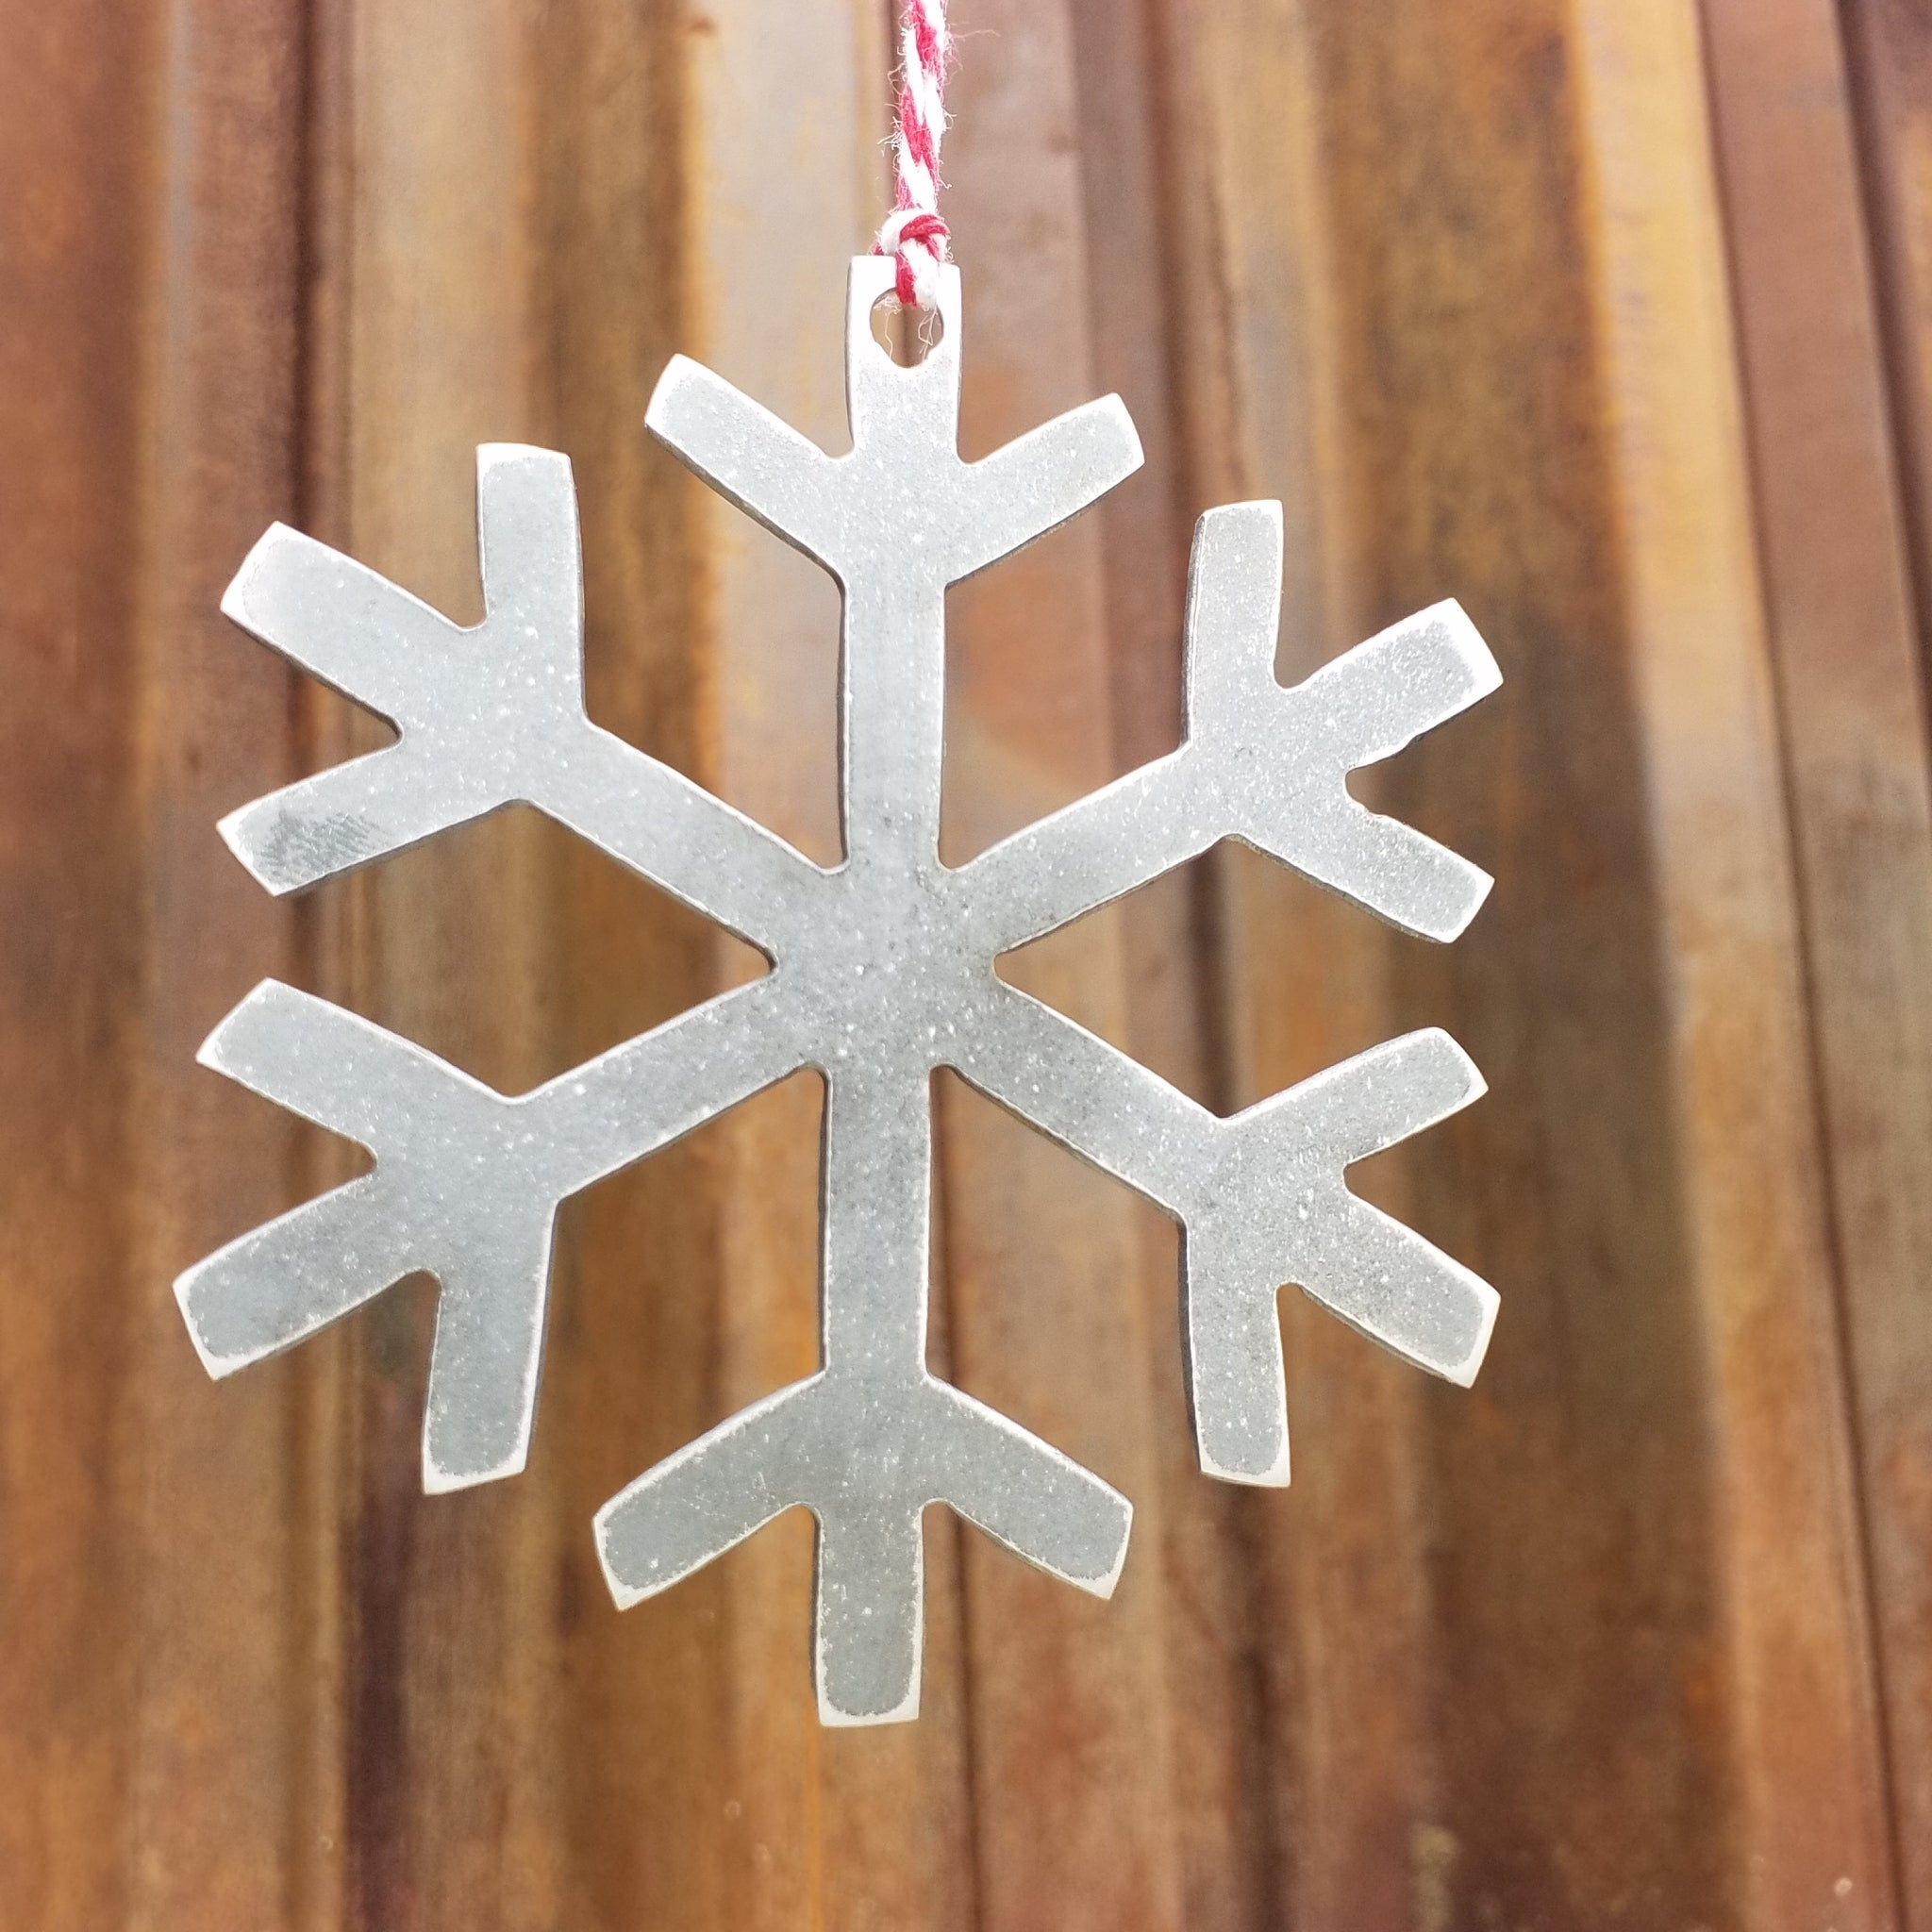 Winter Snowflake Christmas Ornament - FREE SHIPPING, Stocking Stuffer, Holiday Gift, Tree